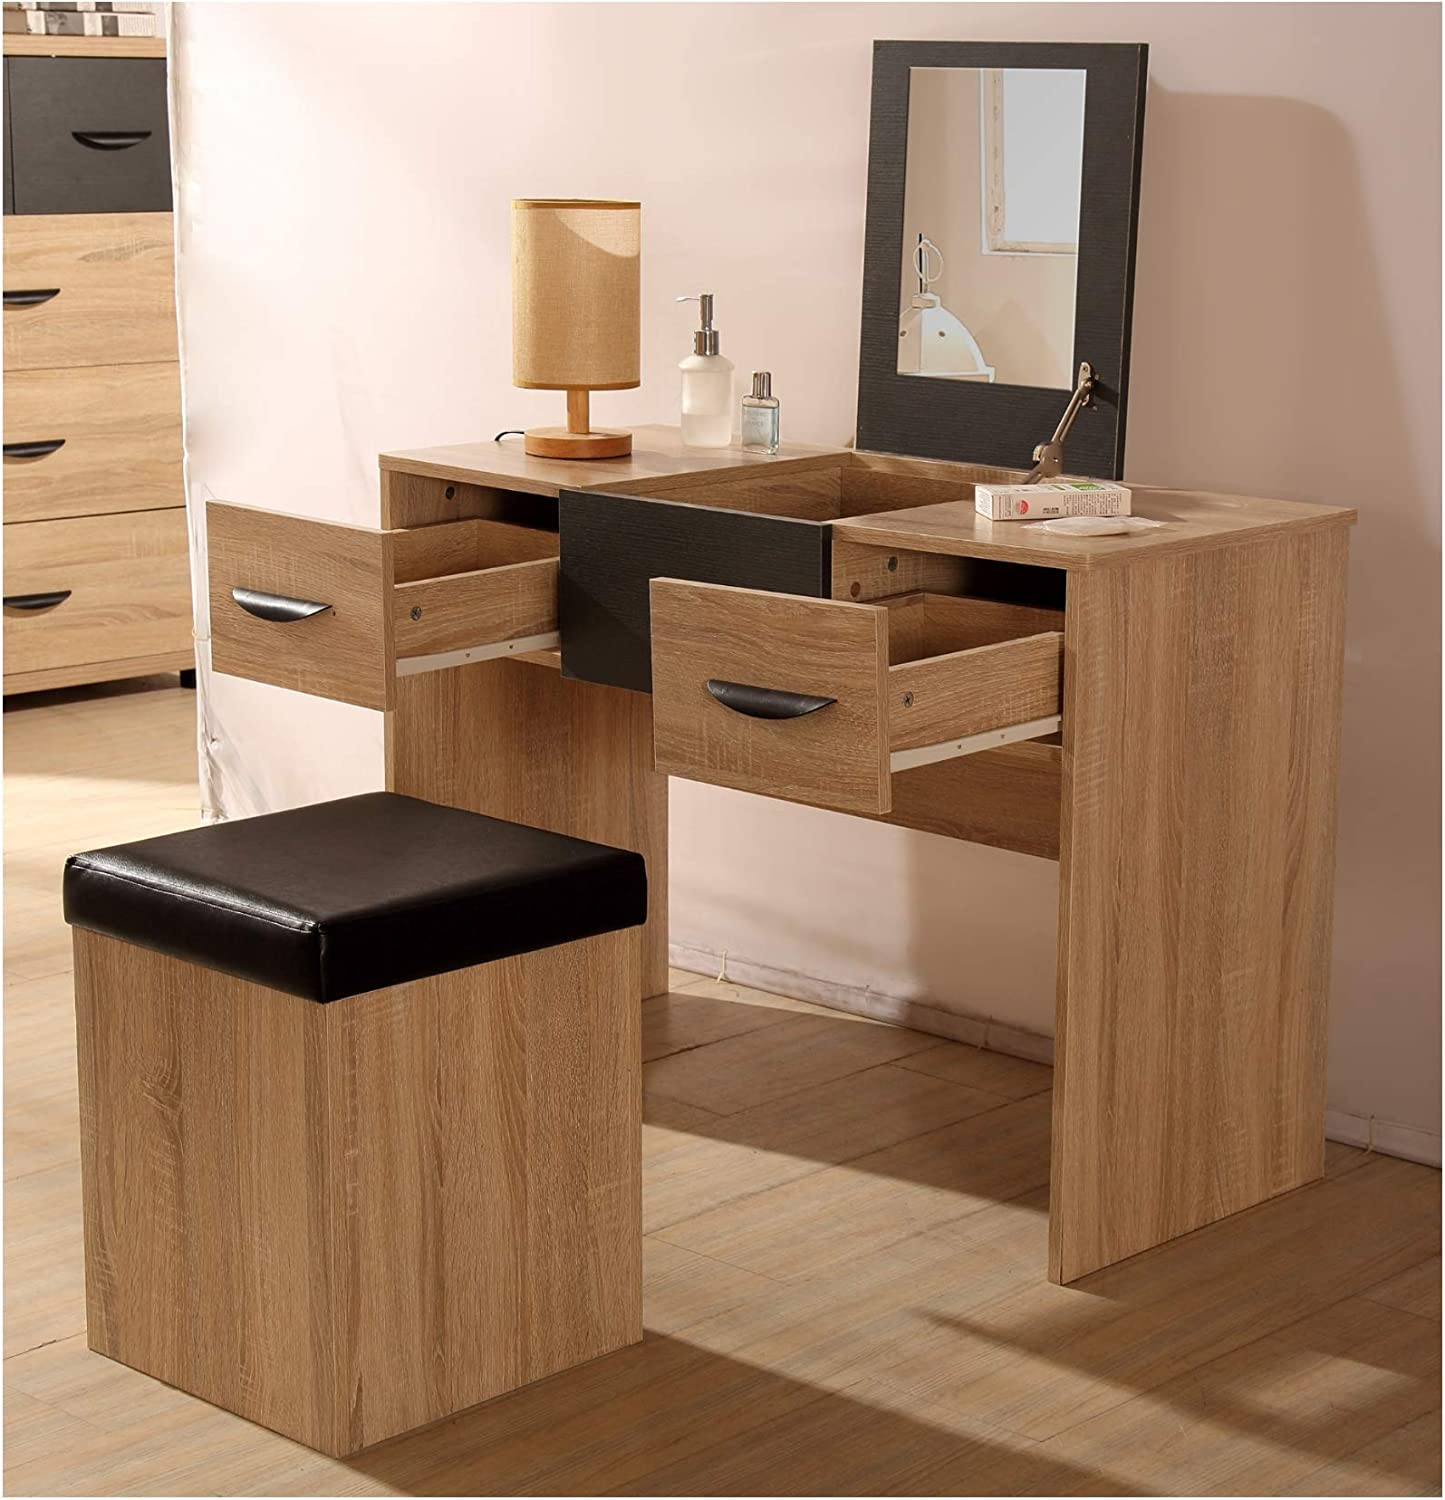 Pacific - Bedroom Furniture Sets Combination Wardrobes Bedside Tables Chests in Oak & Anthracite Grey (2 Drawer Dressing Table)